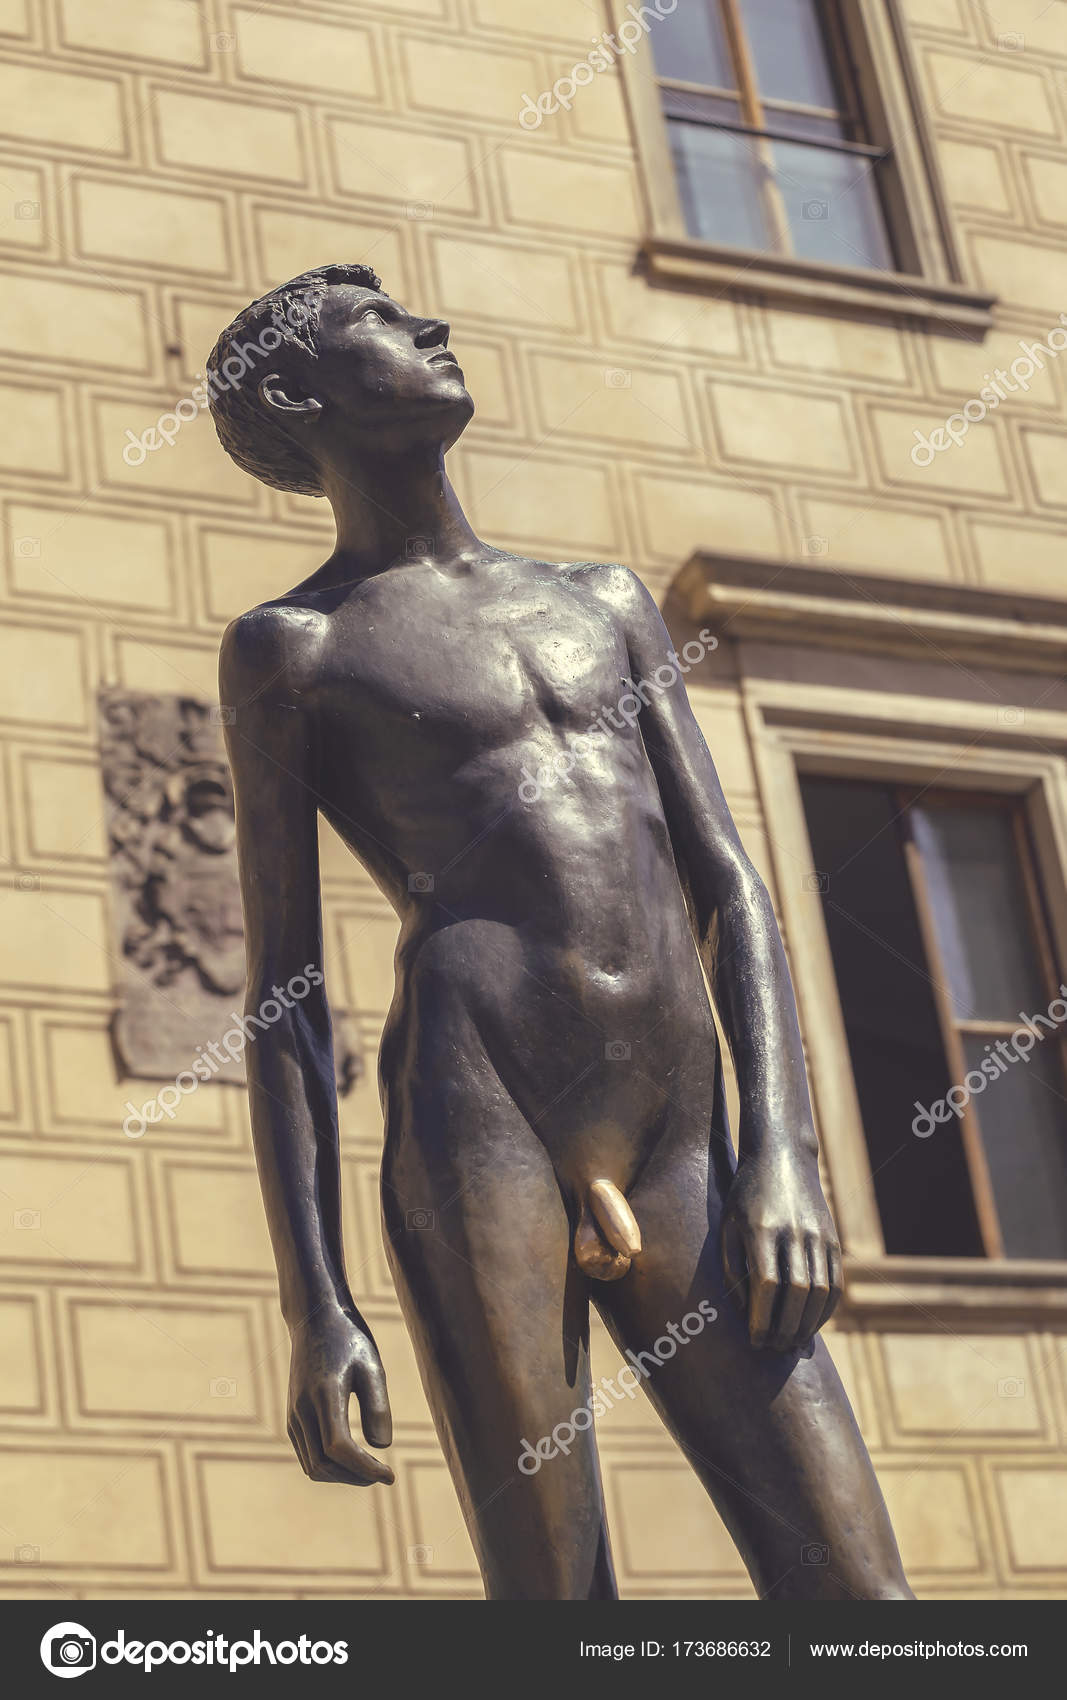 Gay liberation monument high resolution stock photography and images